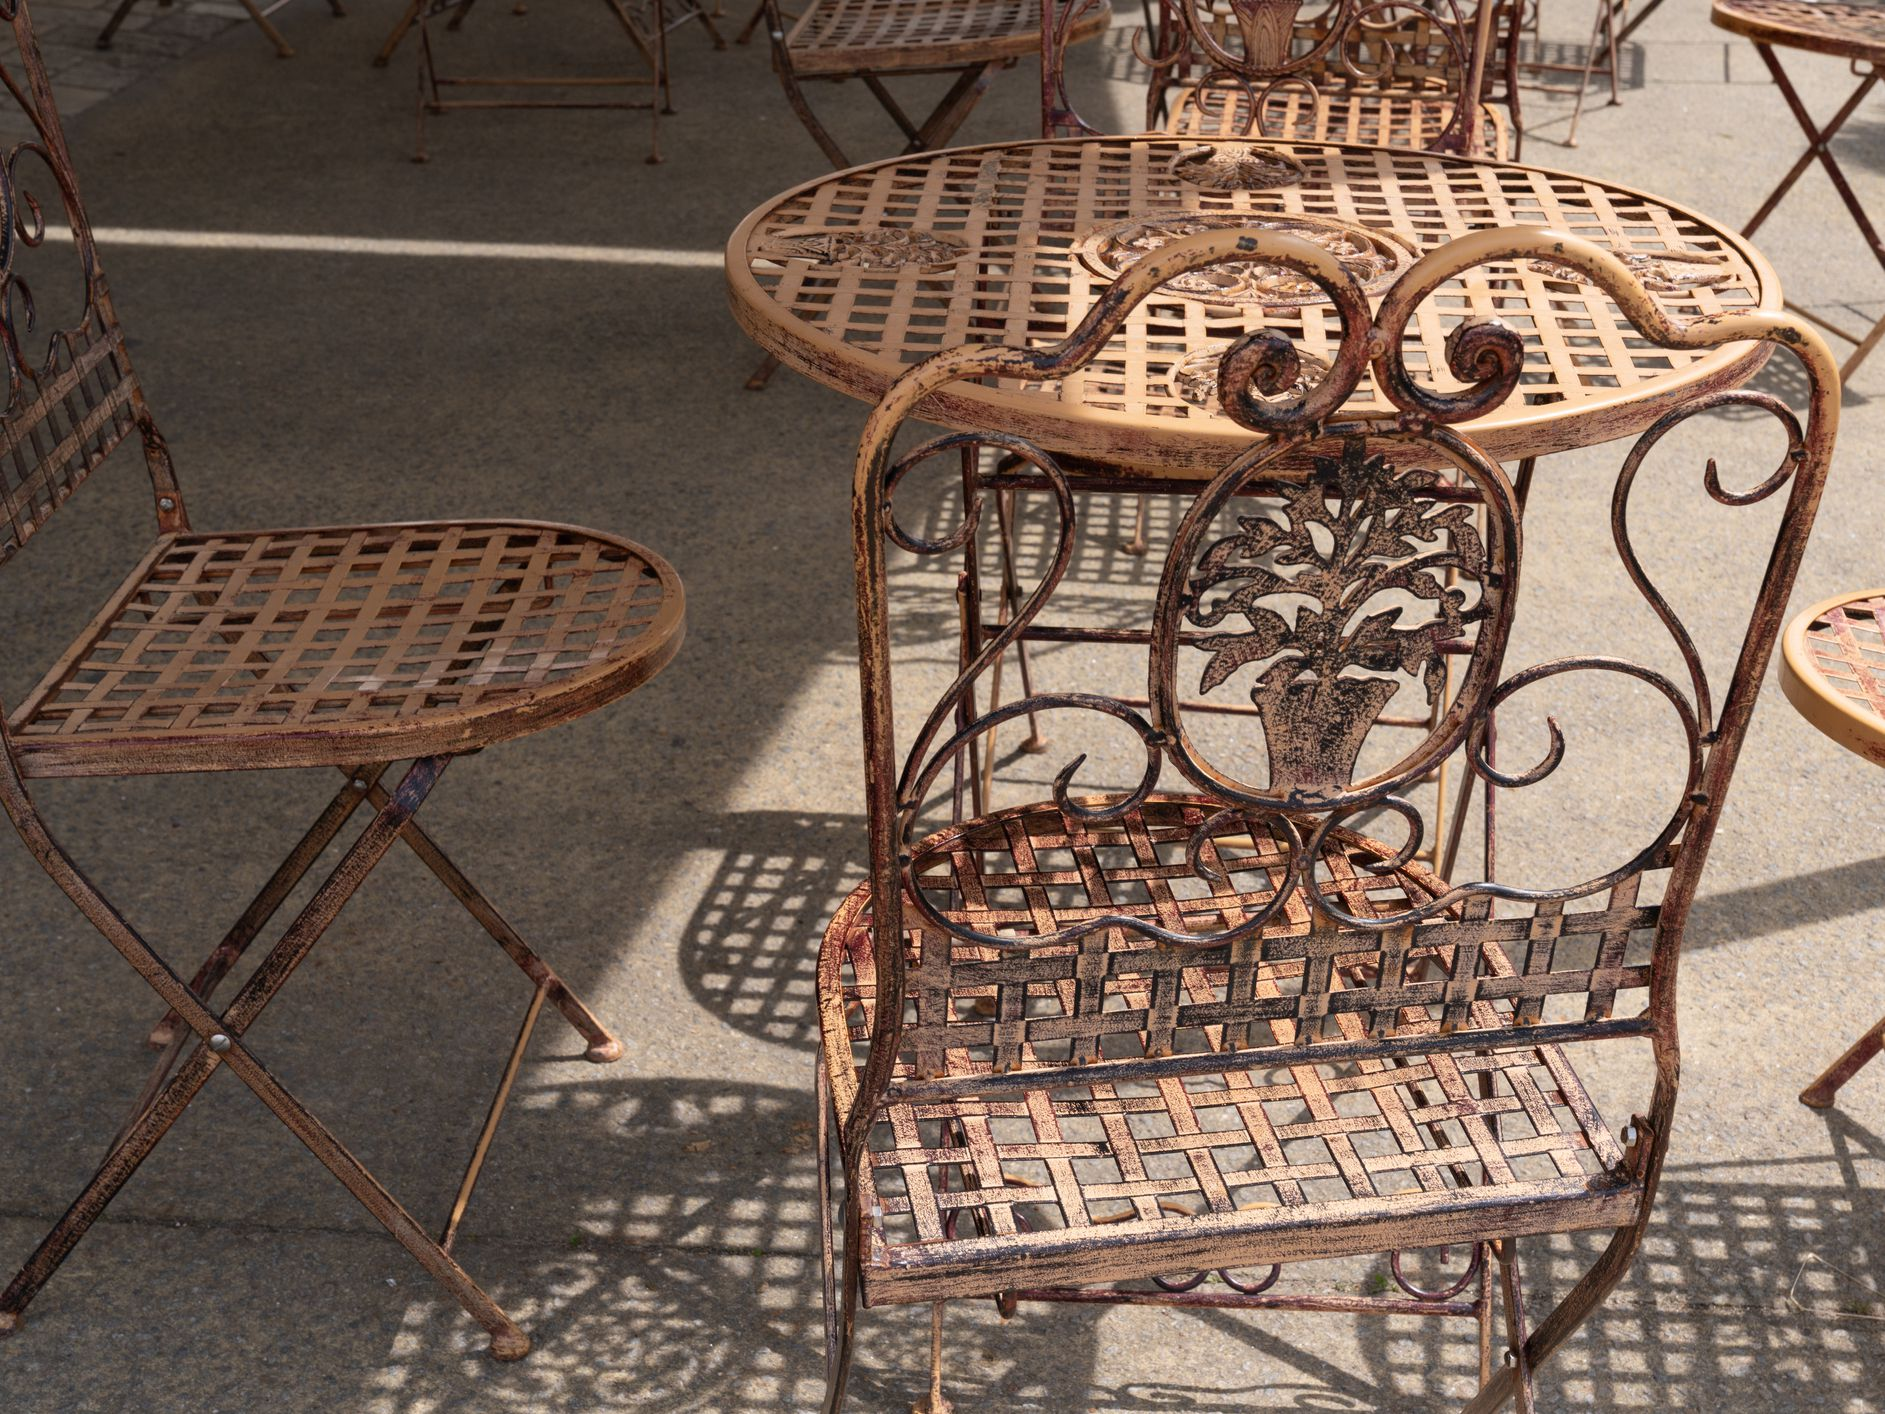 How To Paint Metal - How To Remove Paint From Metal Garden Table